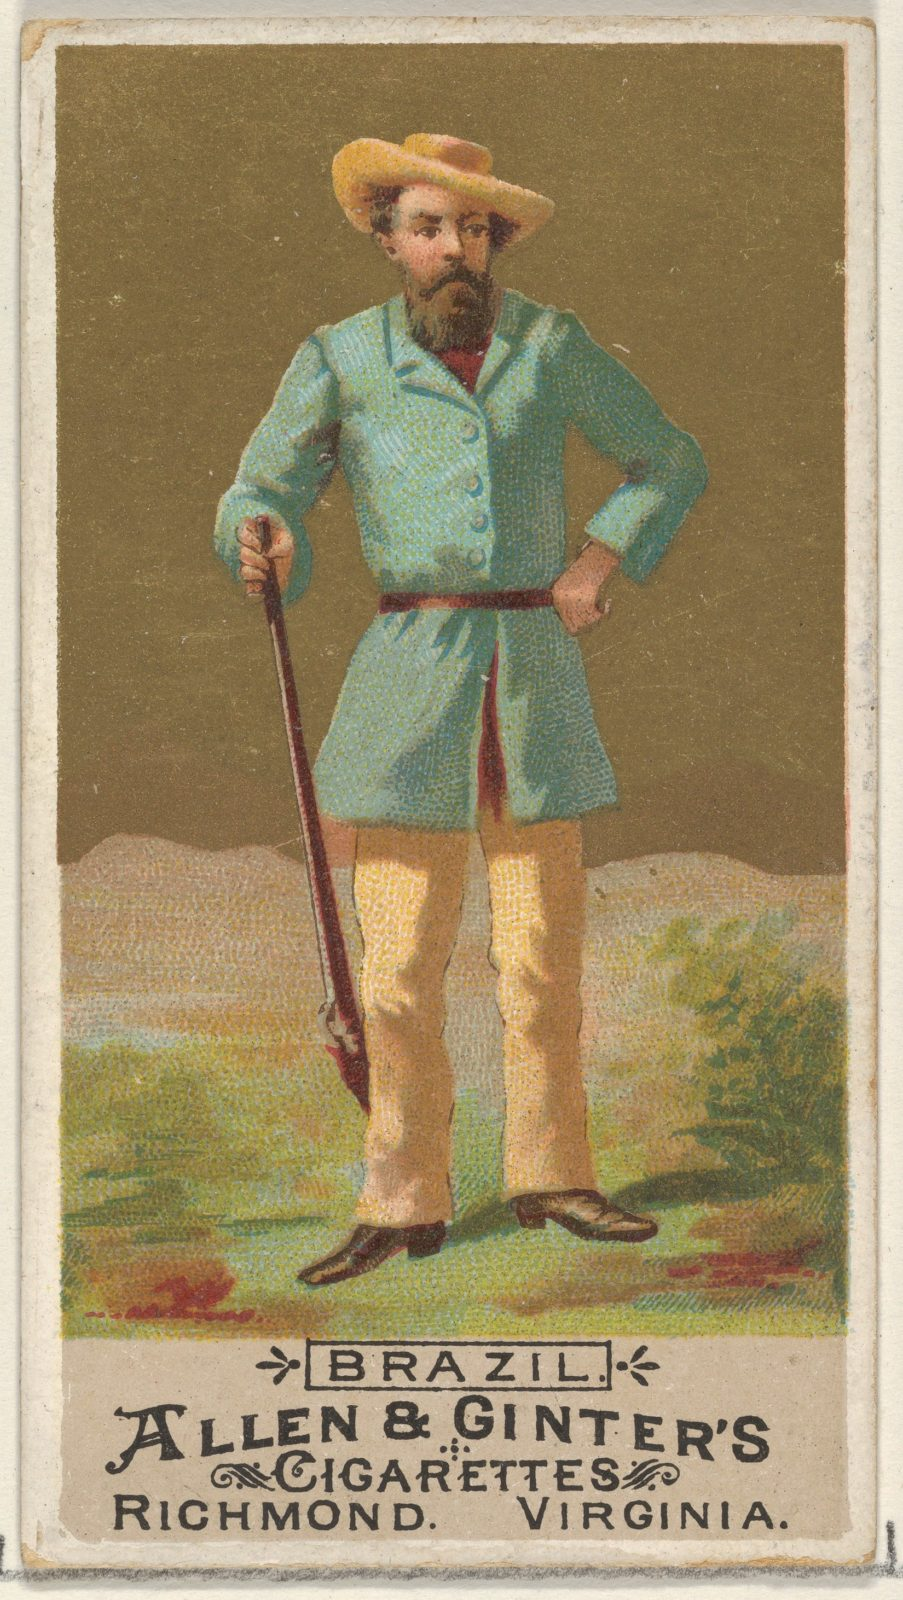 Brazil, from the Natives in Costume series (N16) for Allen & Ginter Cigarettes Brands